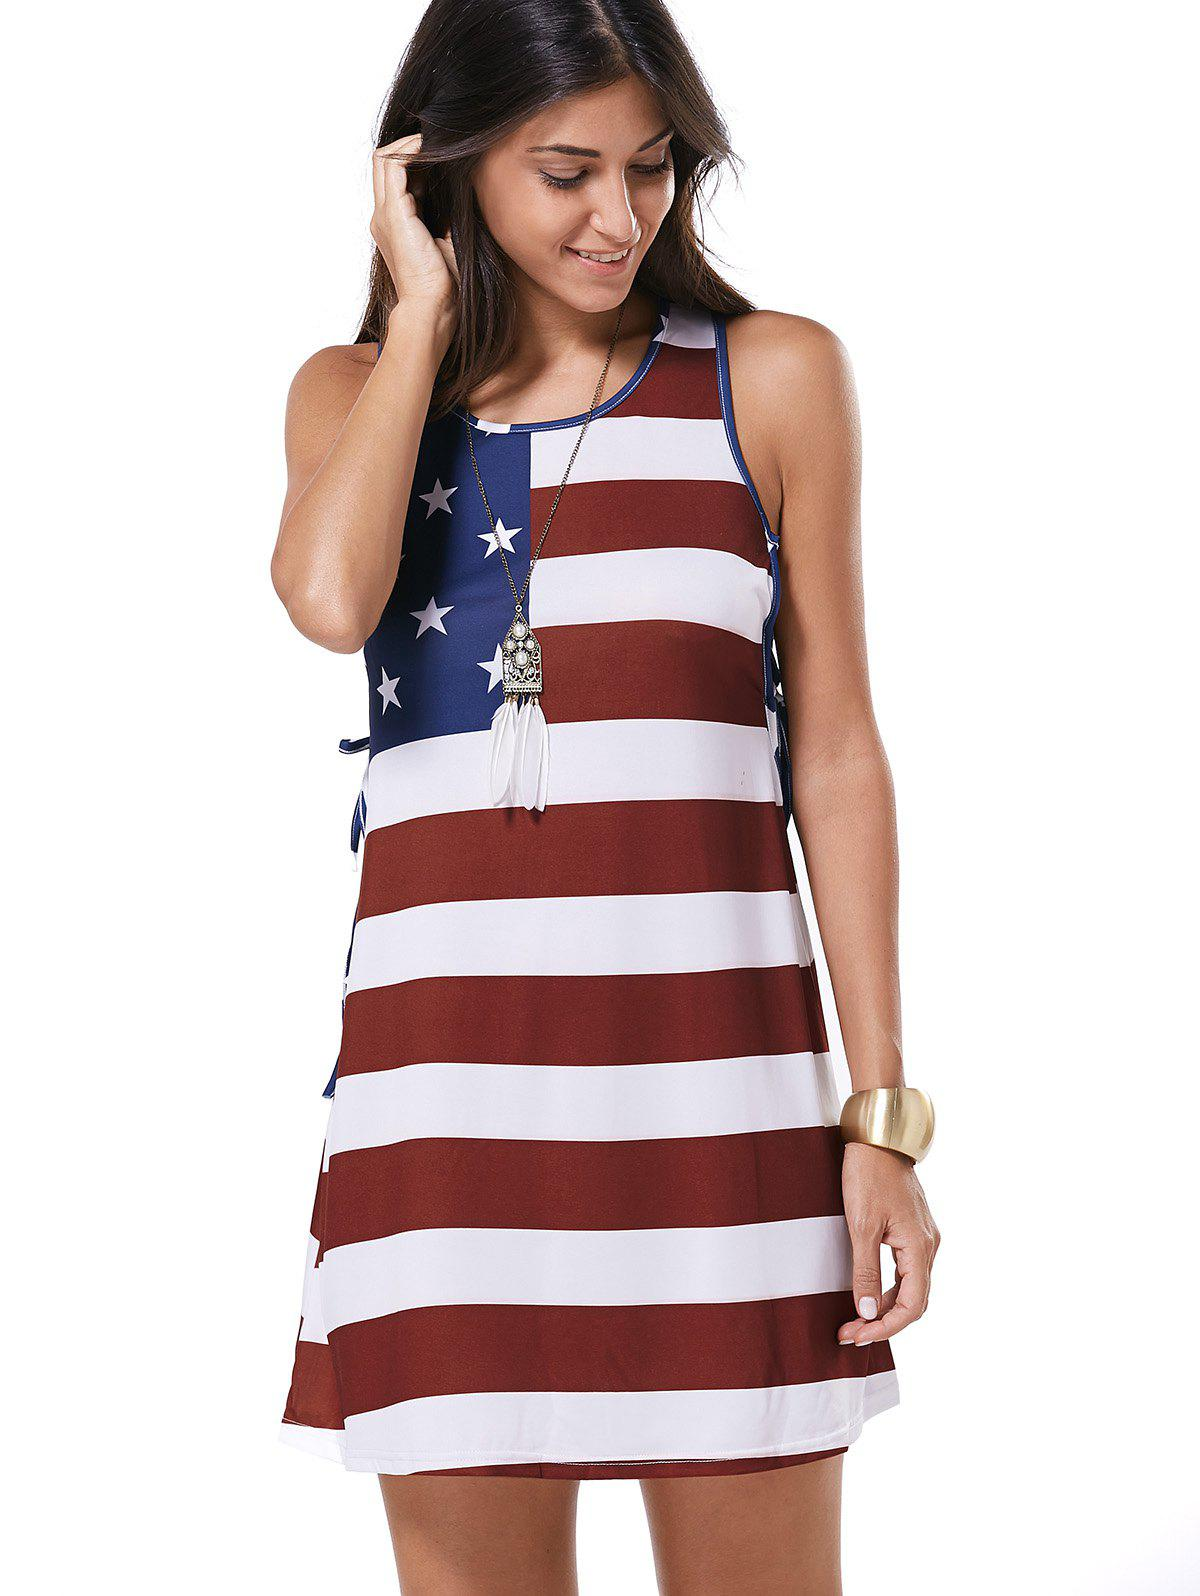 Scoop Neck Flag Pattern Tie-Up Casual Dress - WINE RED XL